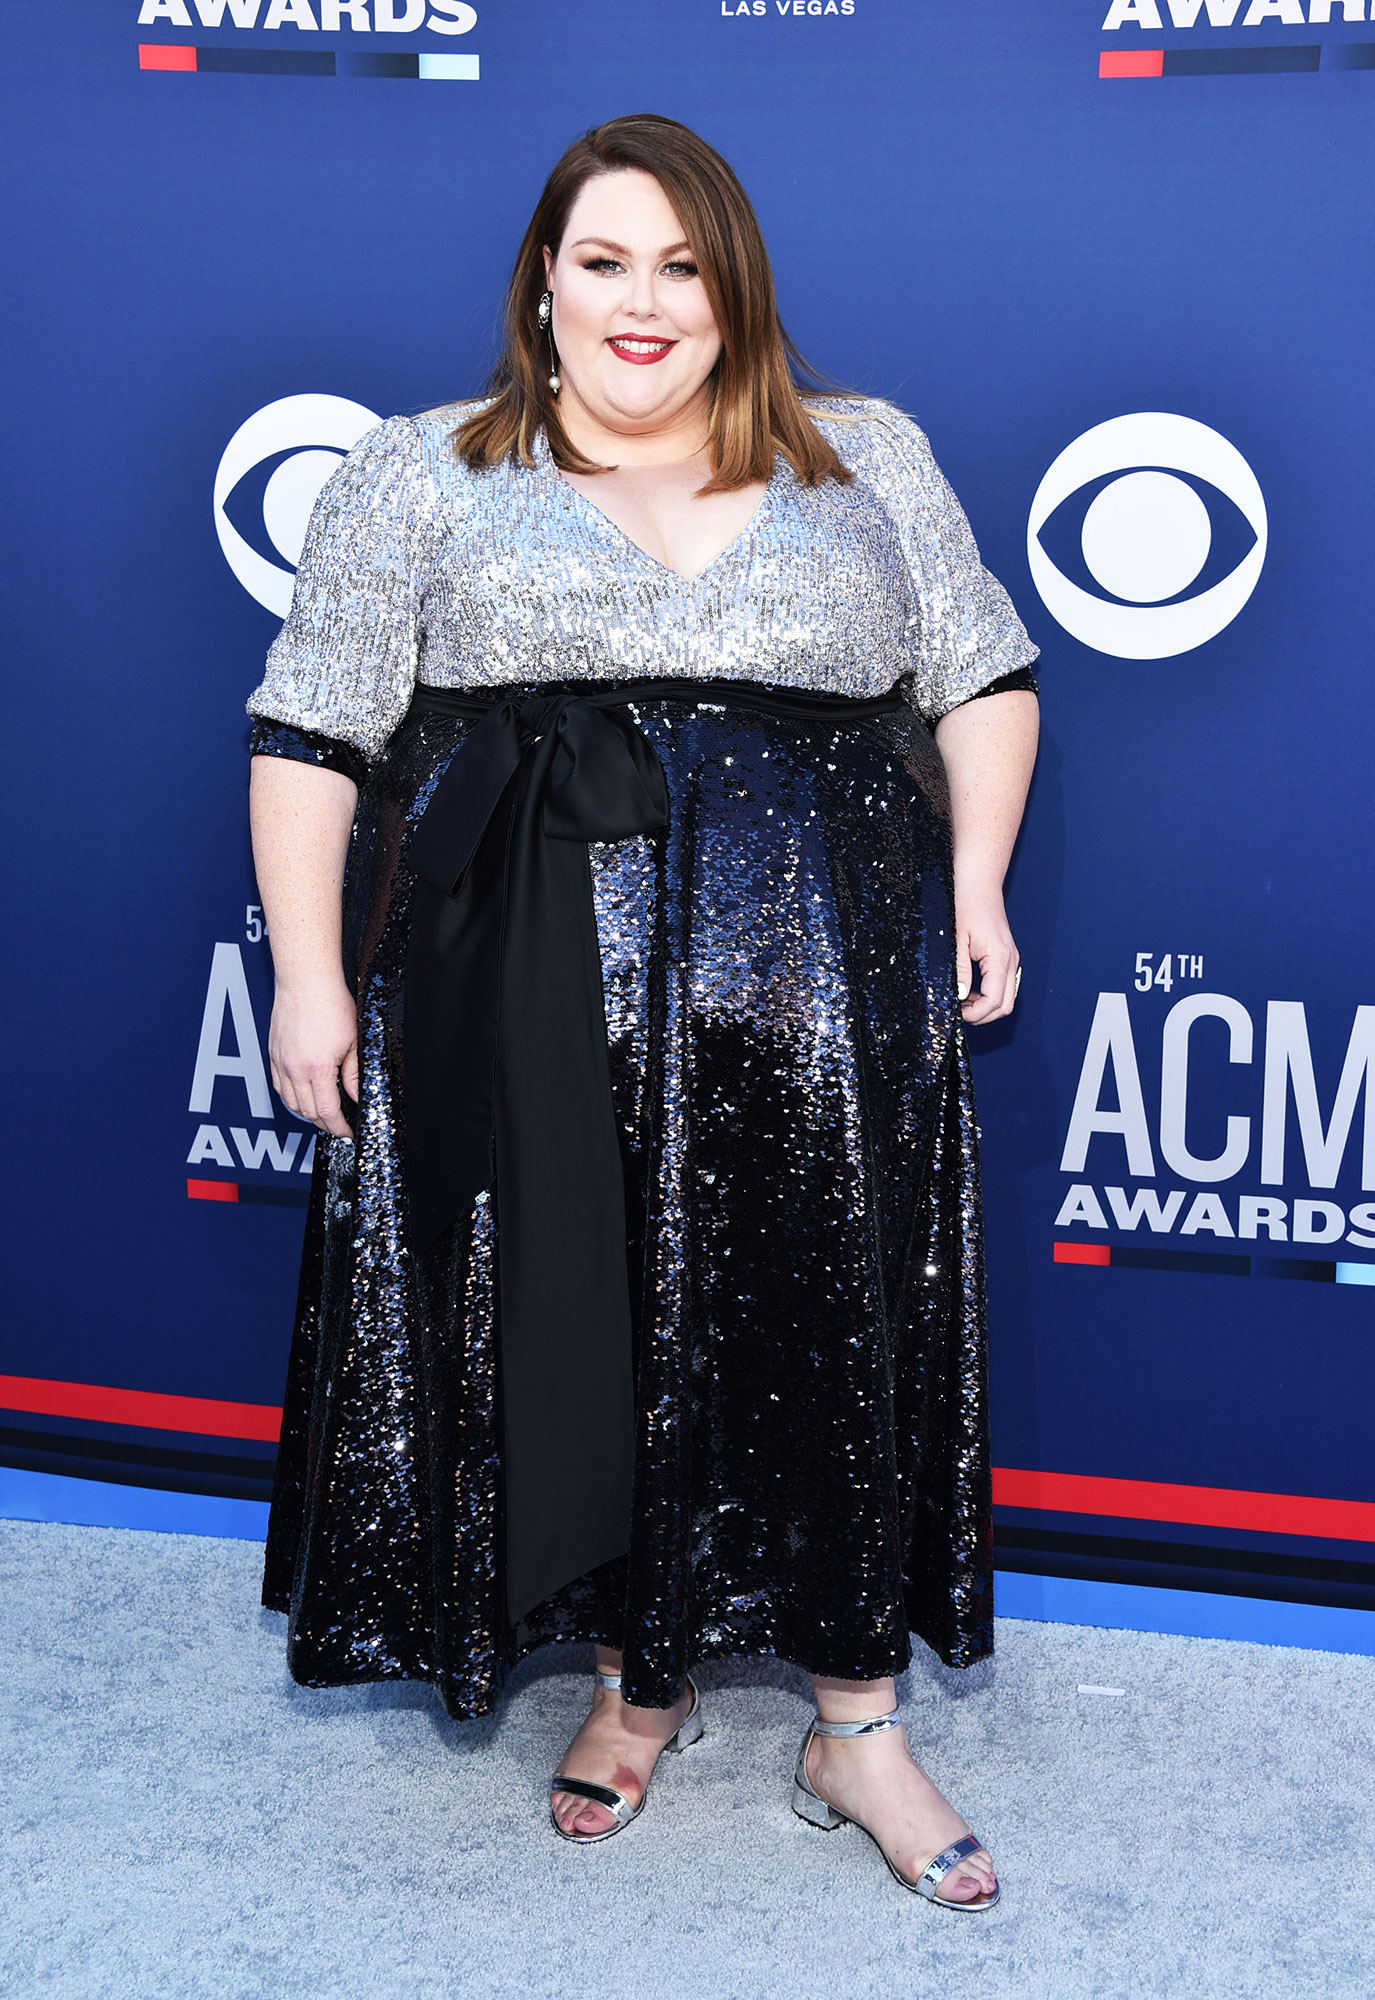 Chrissy Metz The Best Looks From the Country Music Awards Red Carpet - Making her singing debut, the This Is Us actress walked the red carpet in a black and silver sequin gown.